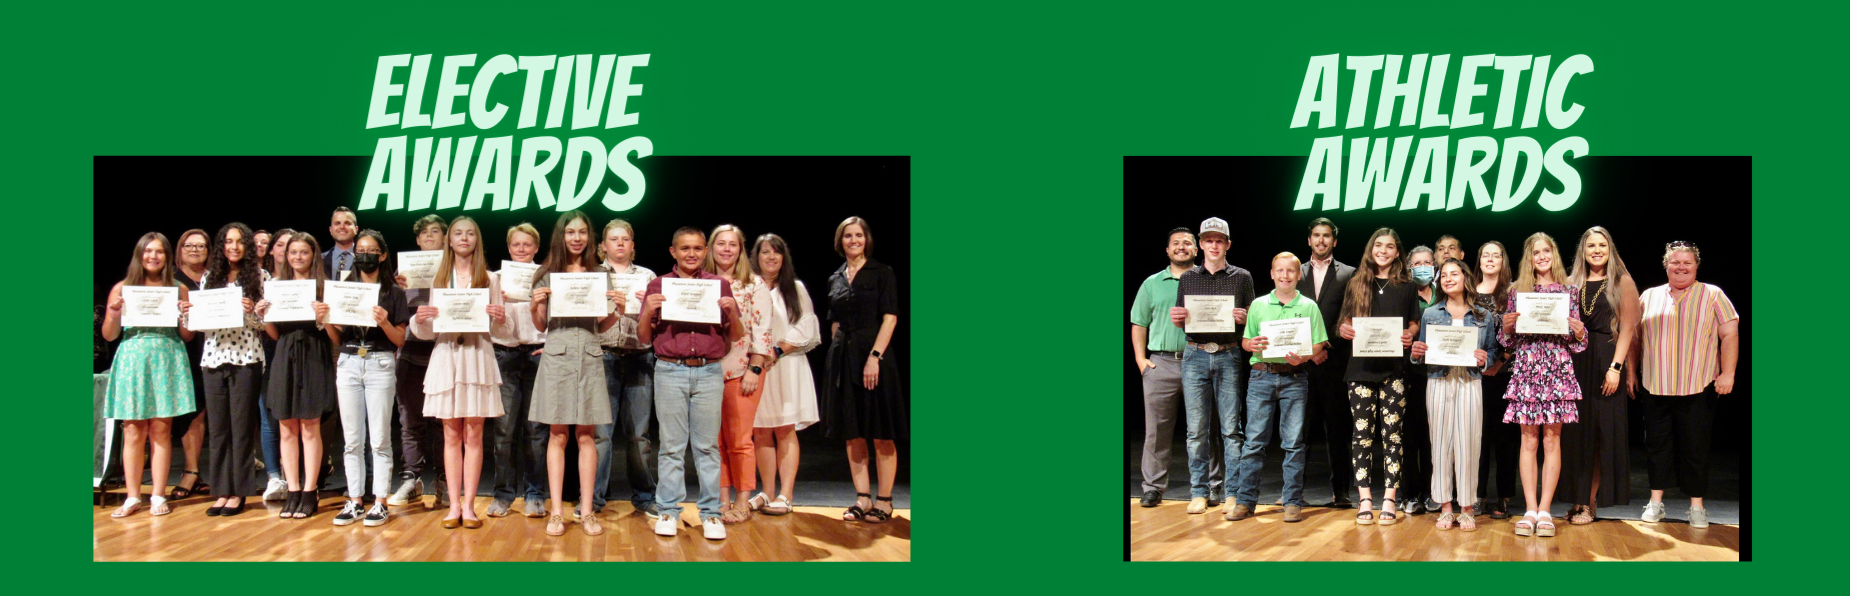 Elective and Athletic Awards